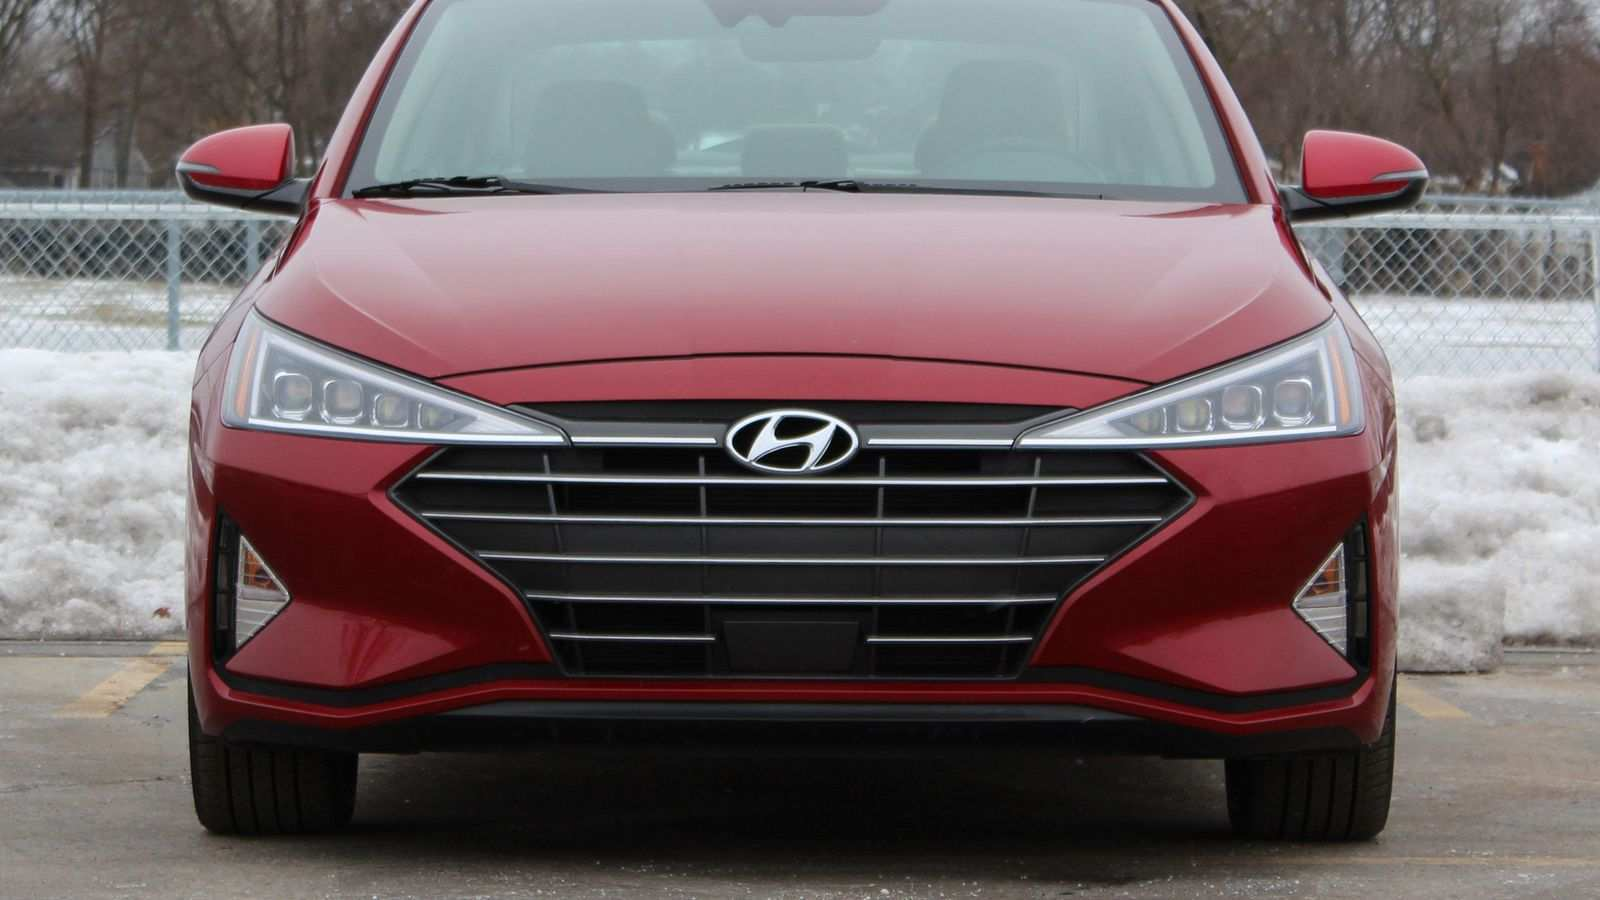 52 New Hyundai Elantra 2020 Redesign And Concept